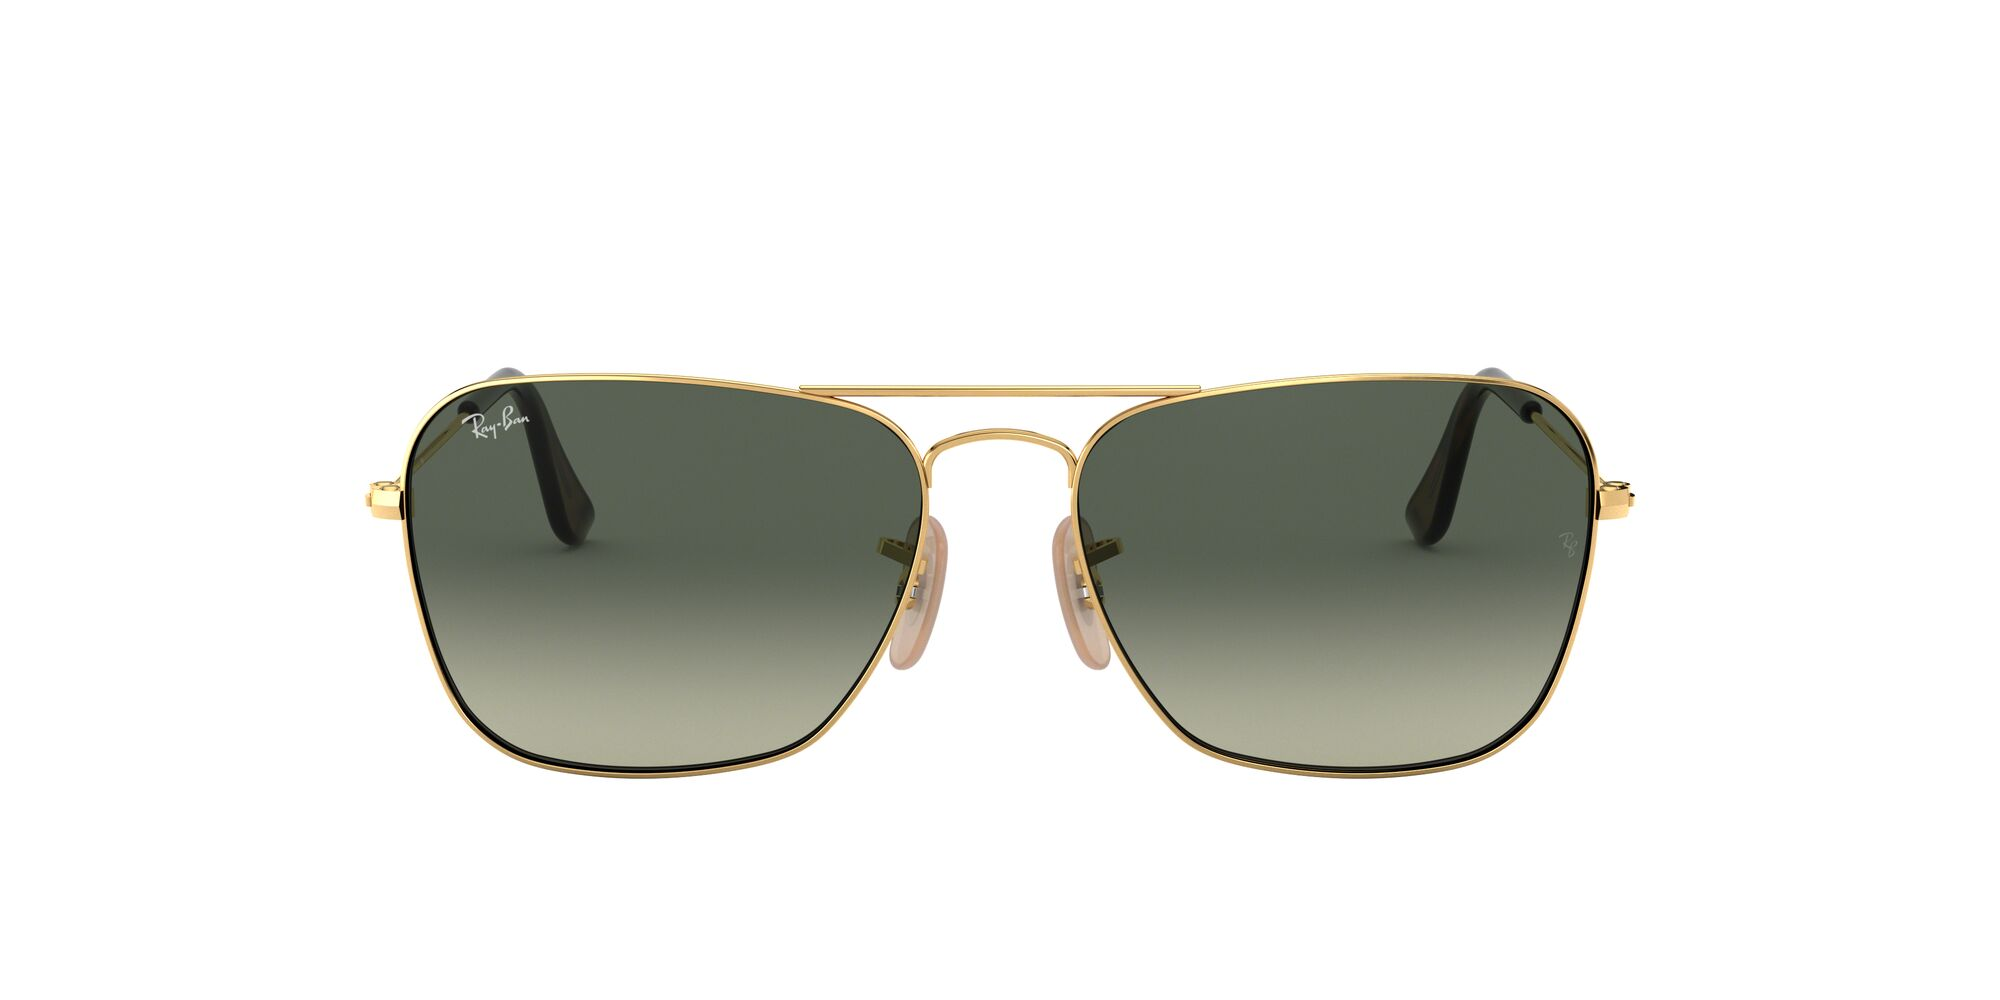 Front Ray-Ban Ray-Ban 0RB3136 181/71 55/15 Goud/Grijs